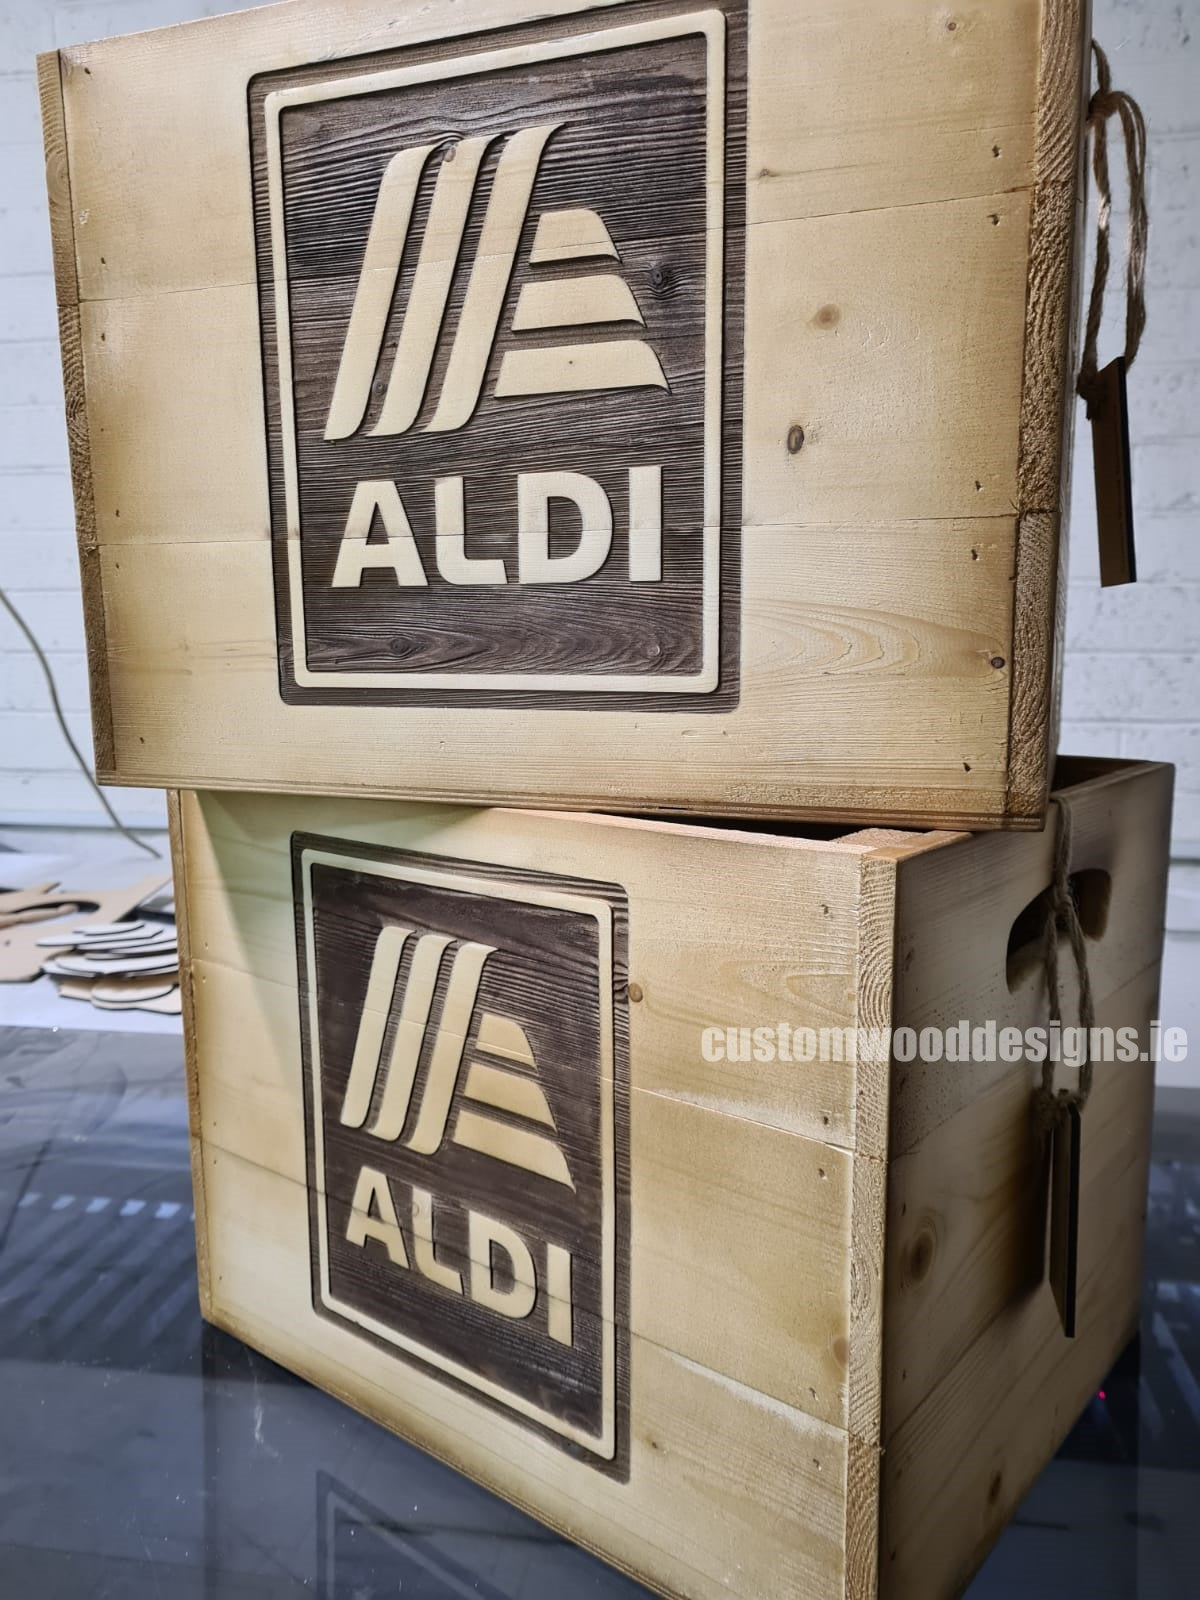 branded boxes ireland wooden boxes ireland corporate boxes corporate gift boxes solid wooden bolxes engraved wooden boxes personalised boxes ireland custom wood designs  branded wooden crates wood crates ireland Aldi Ireland retail display Alid